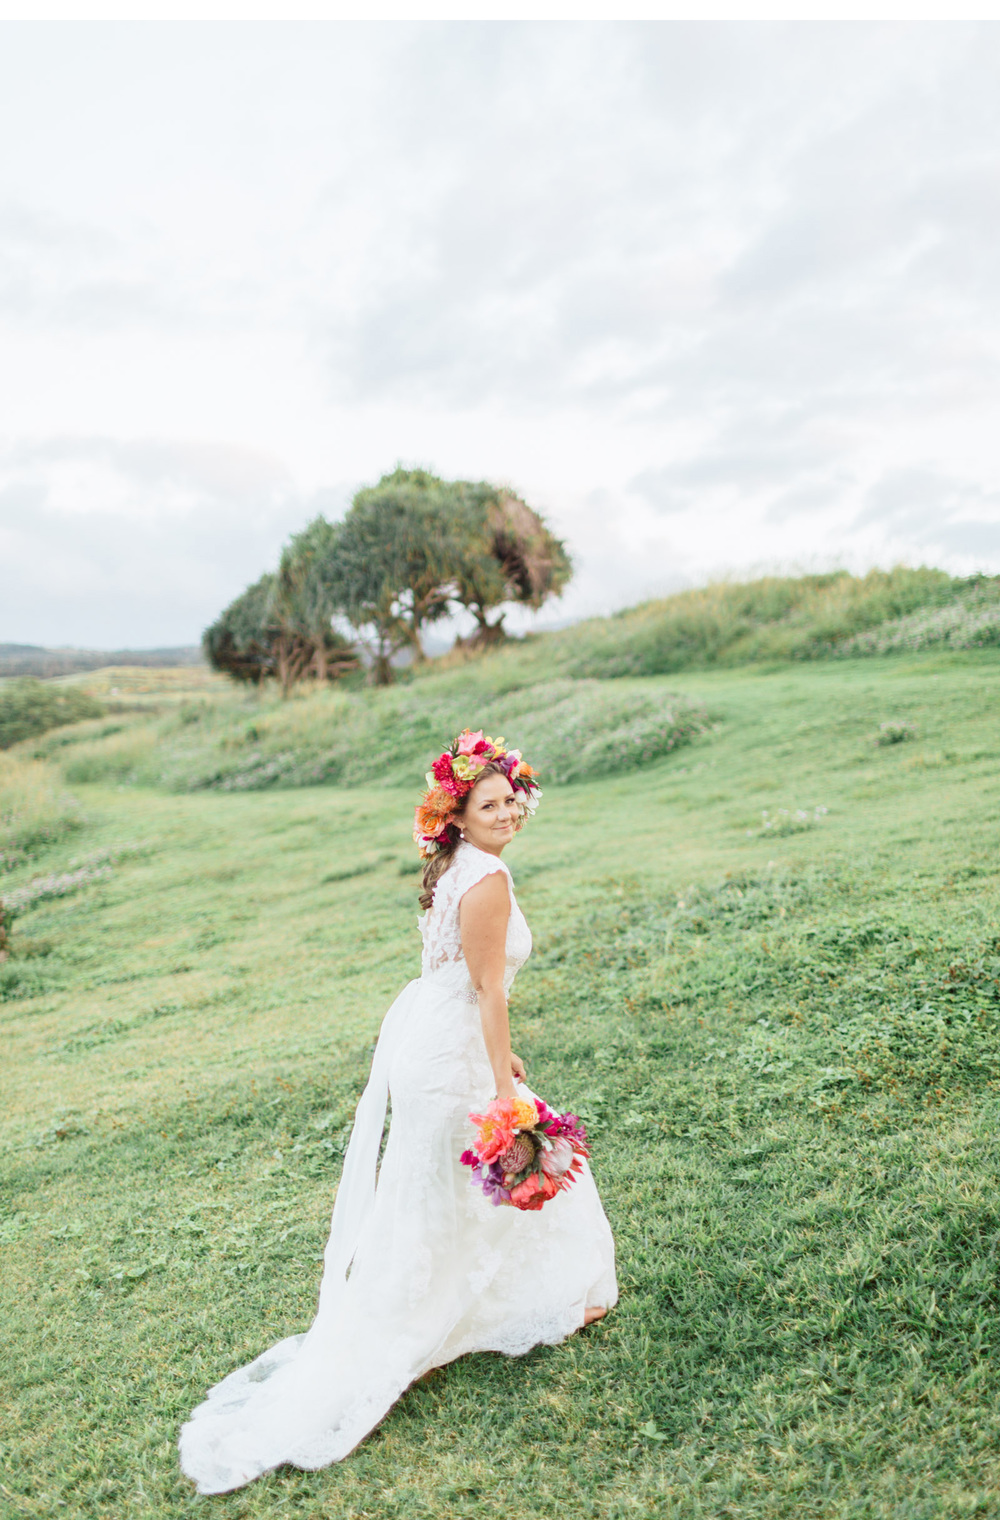 Natalie-Schutt-Photography--Hawaii-Wedding_04.jpg